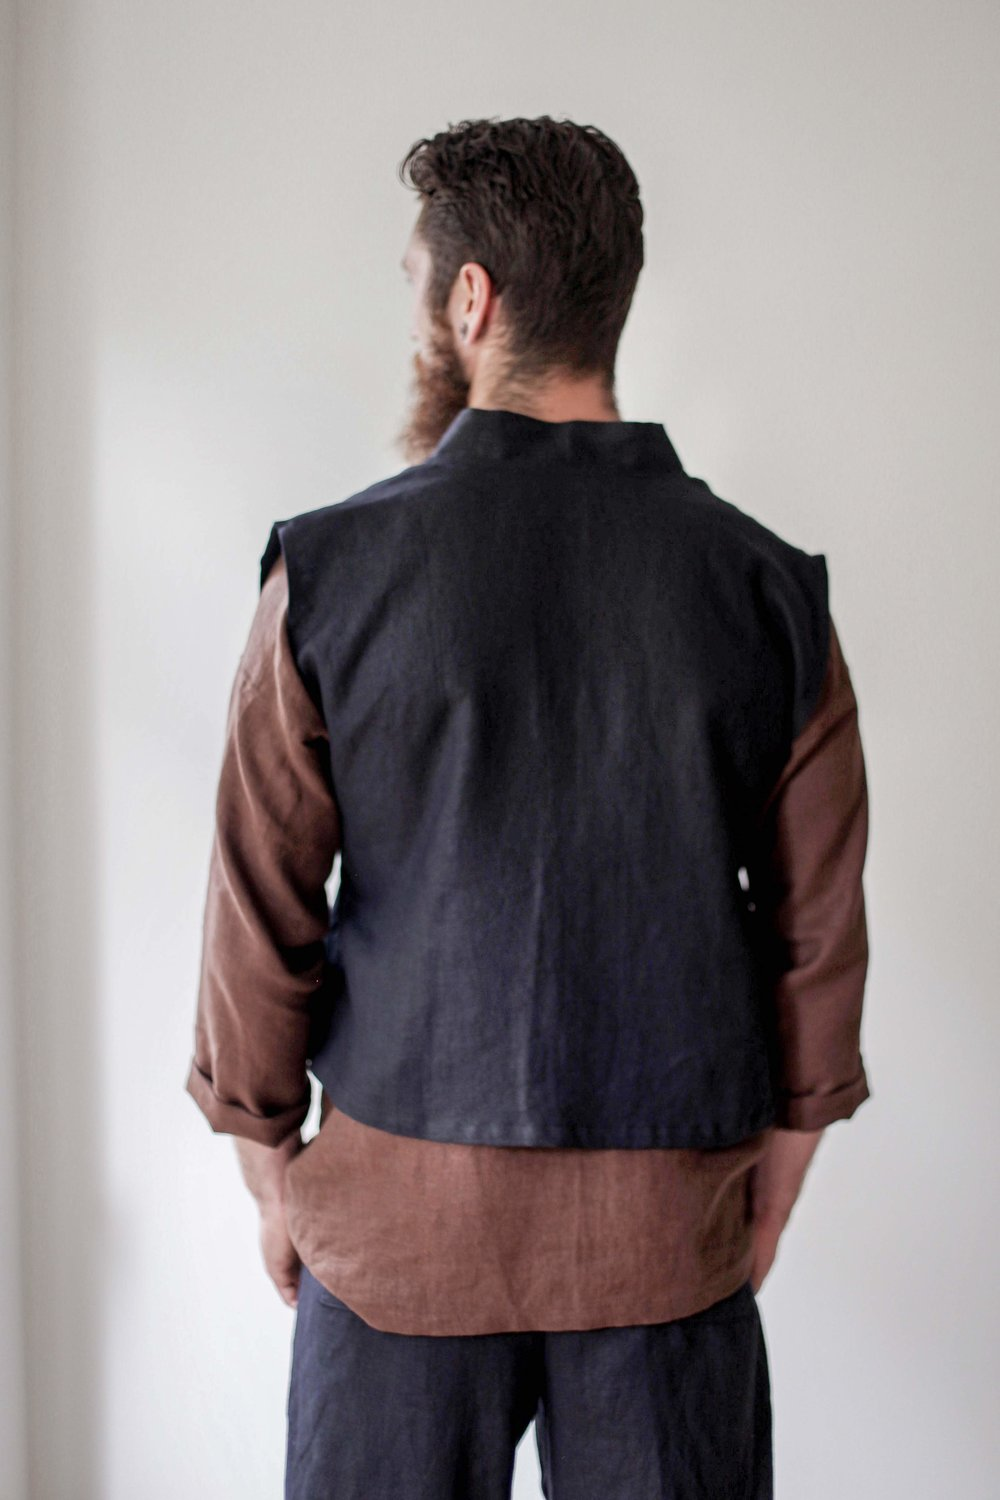 nomi-designs_mens-katara-vest_black_natural-linen-vest-for-men_back-tied.jpg